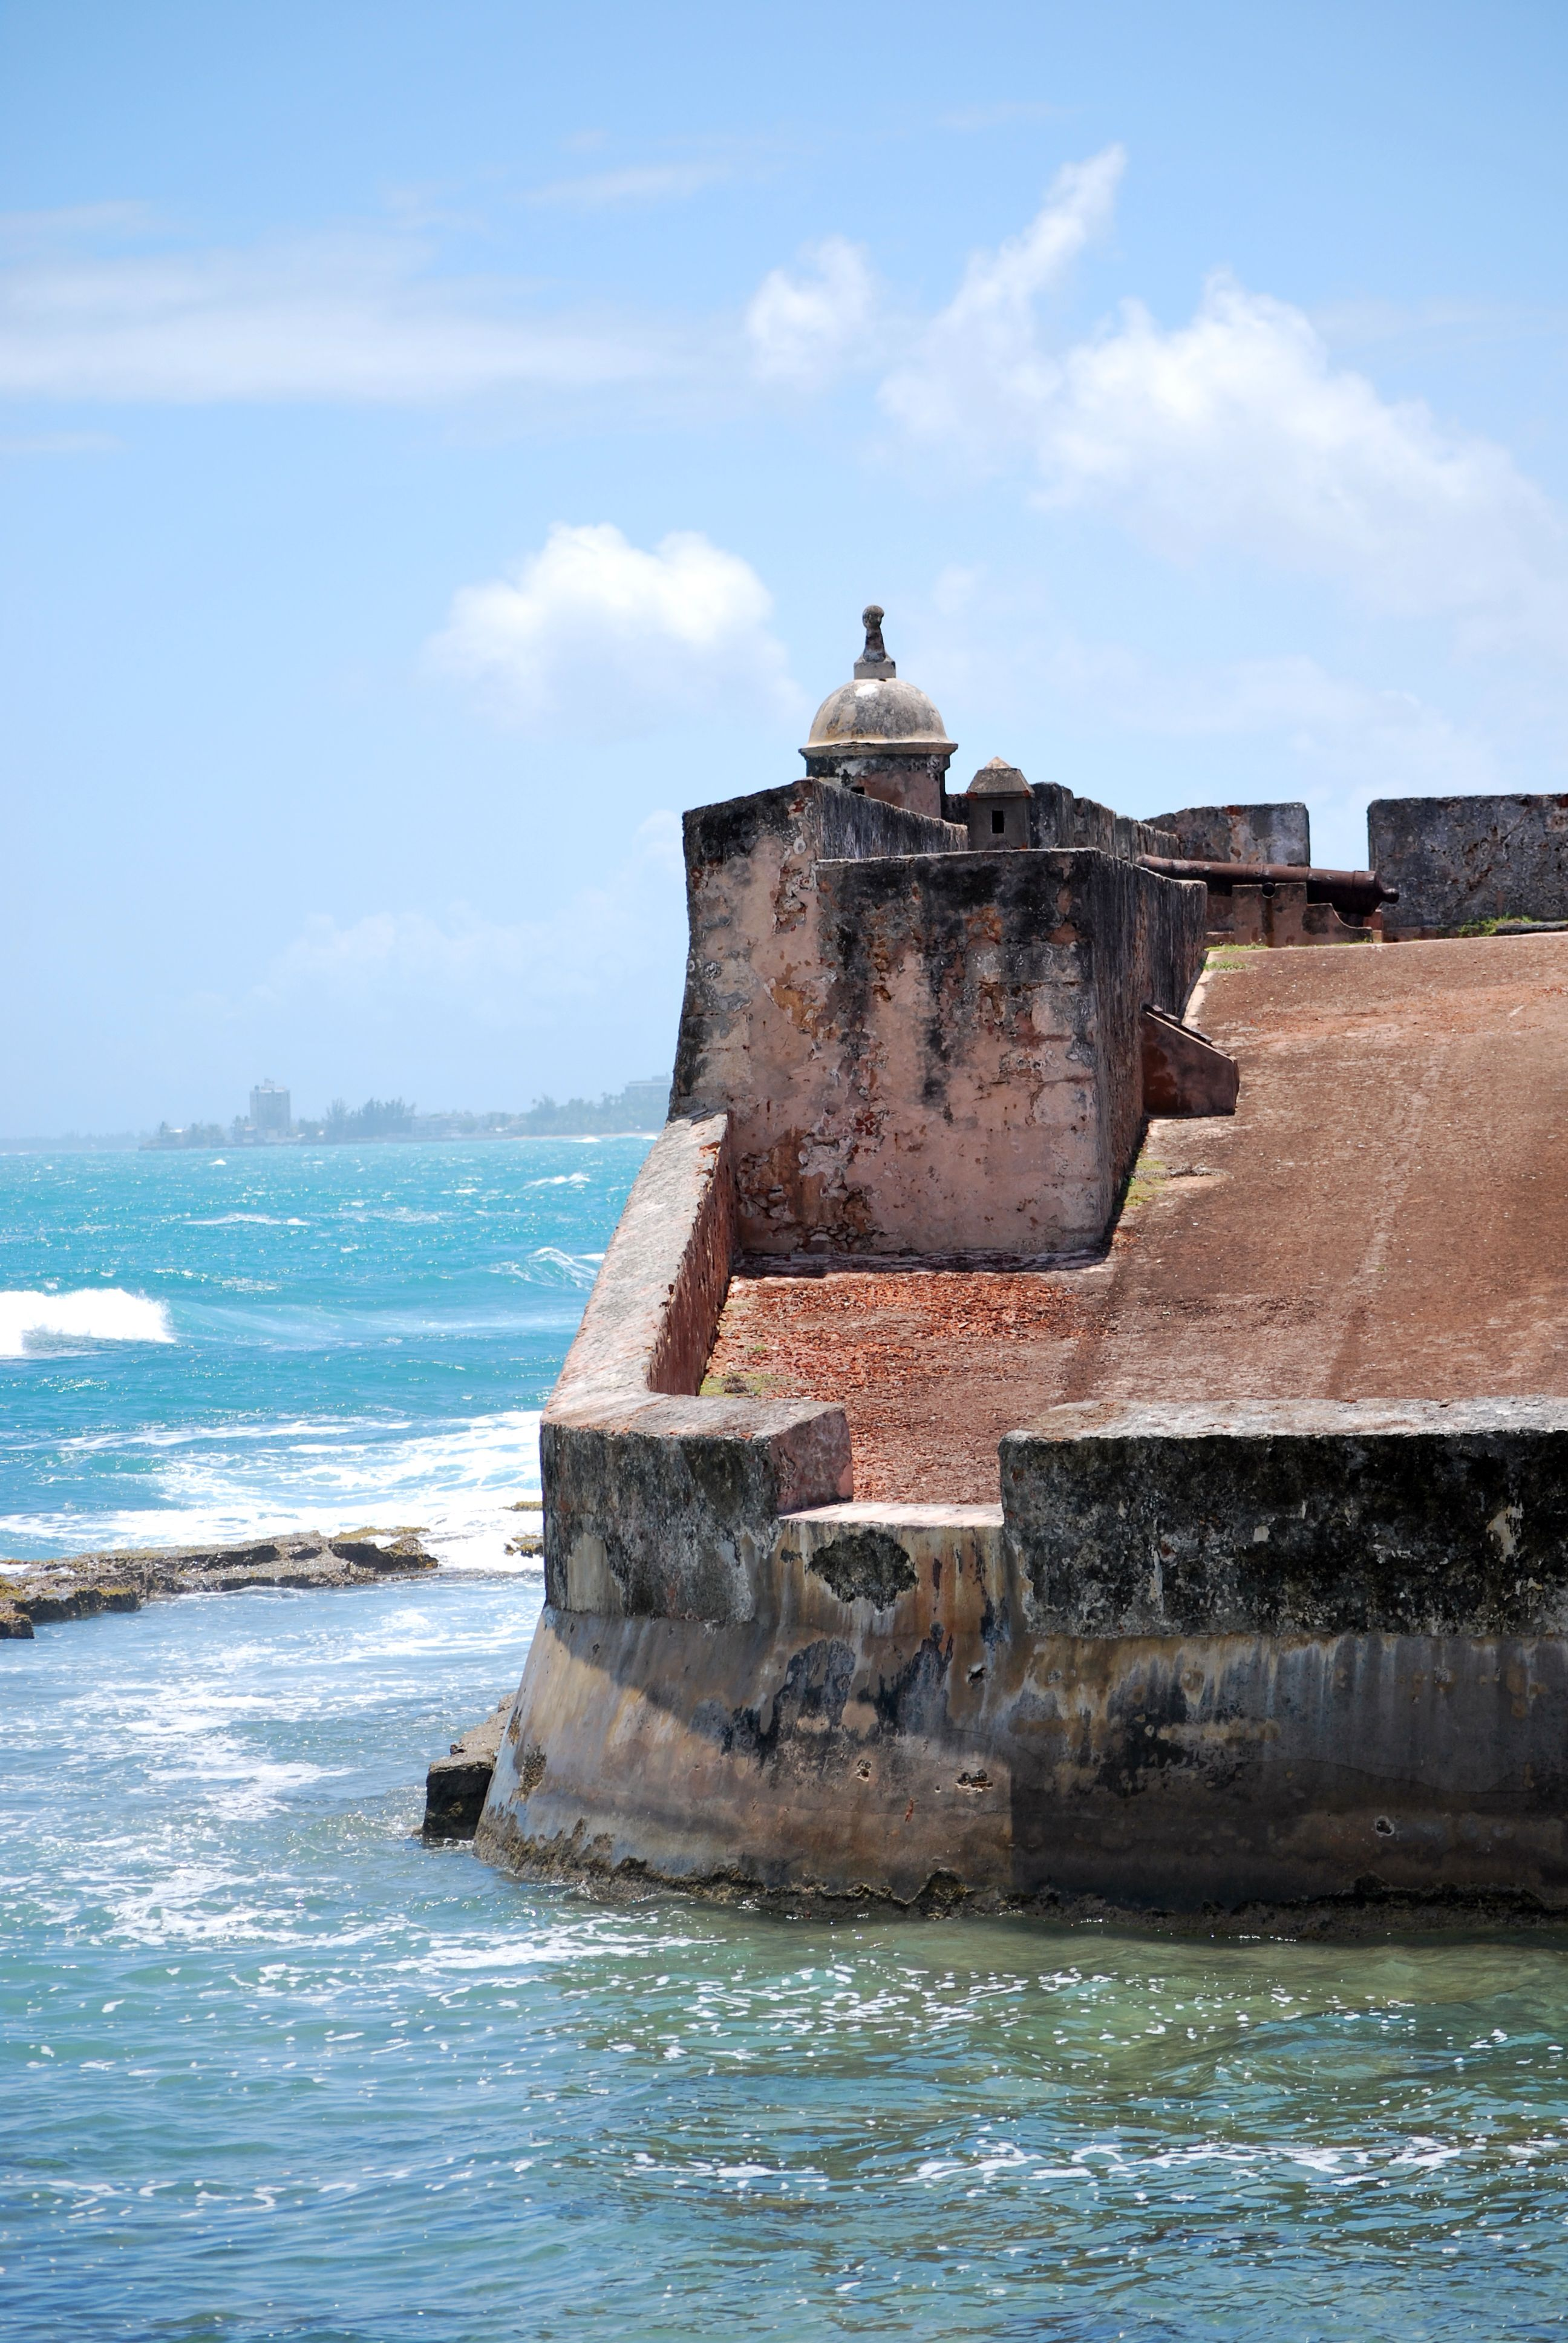 San juan puerto rico been there three times from a cruise for Puerto rico vacation ideas